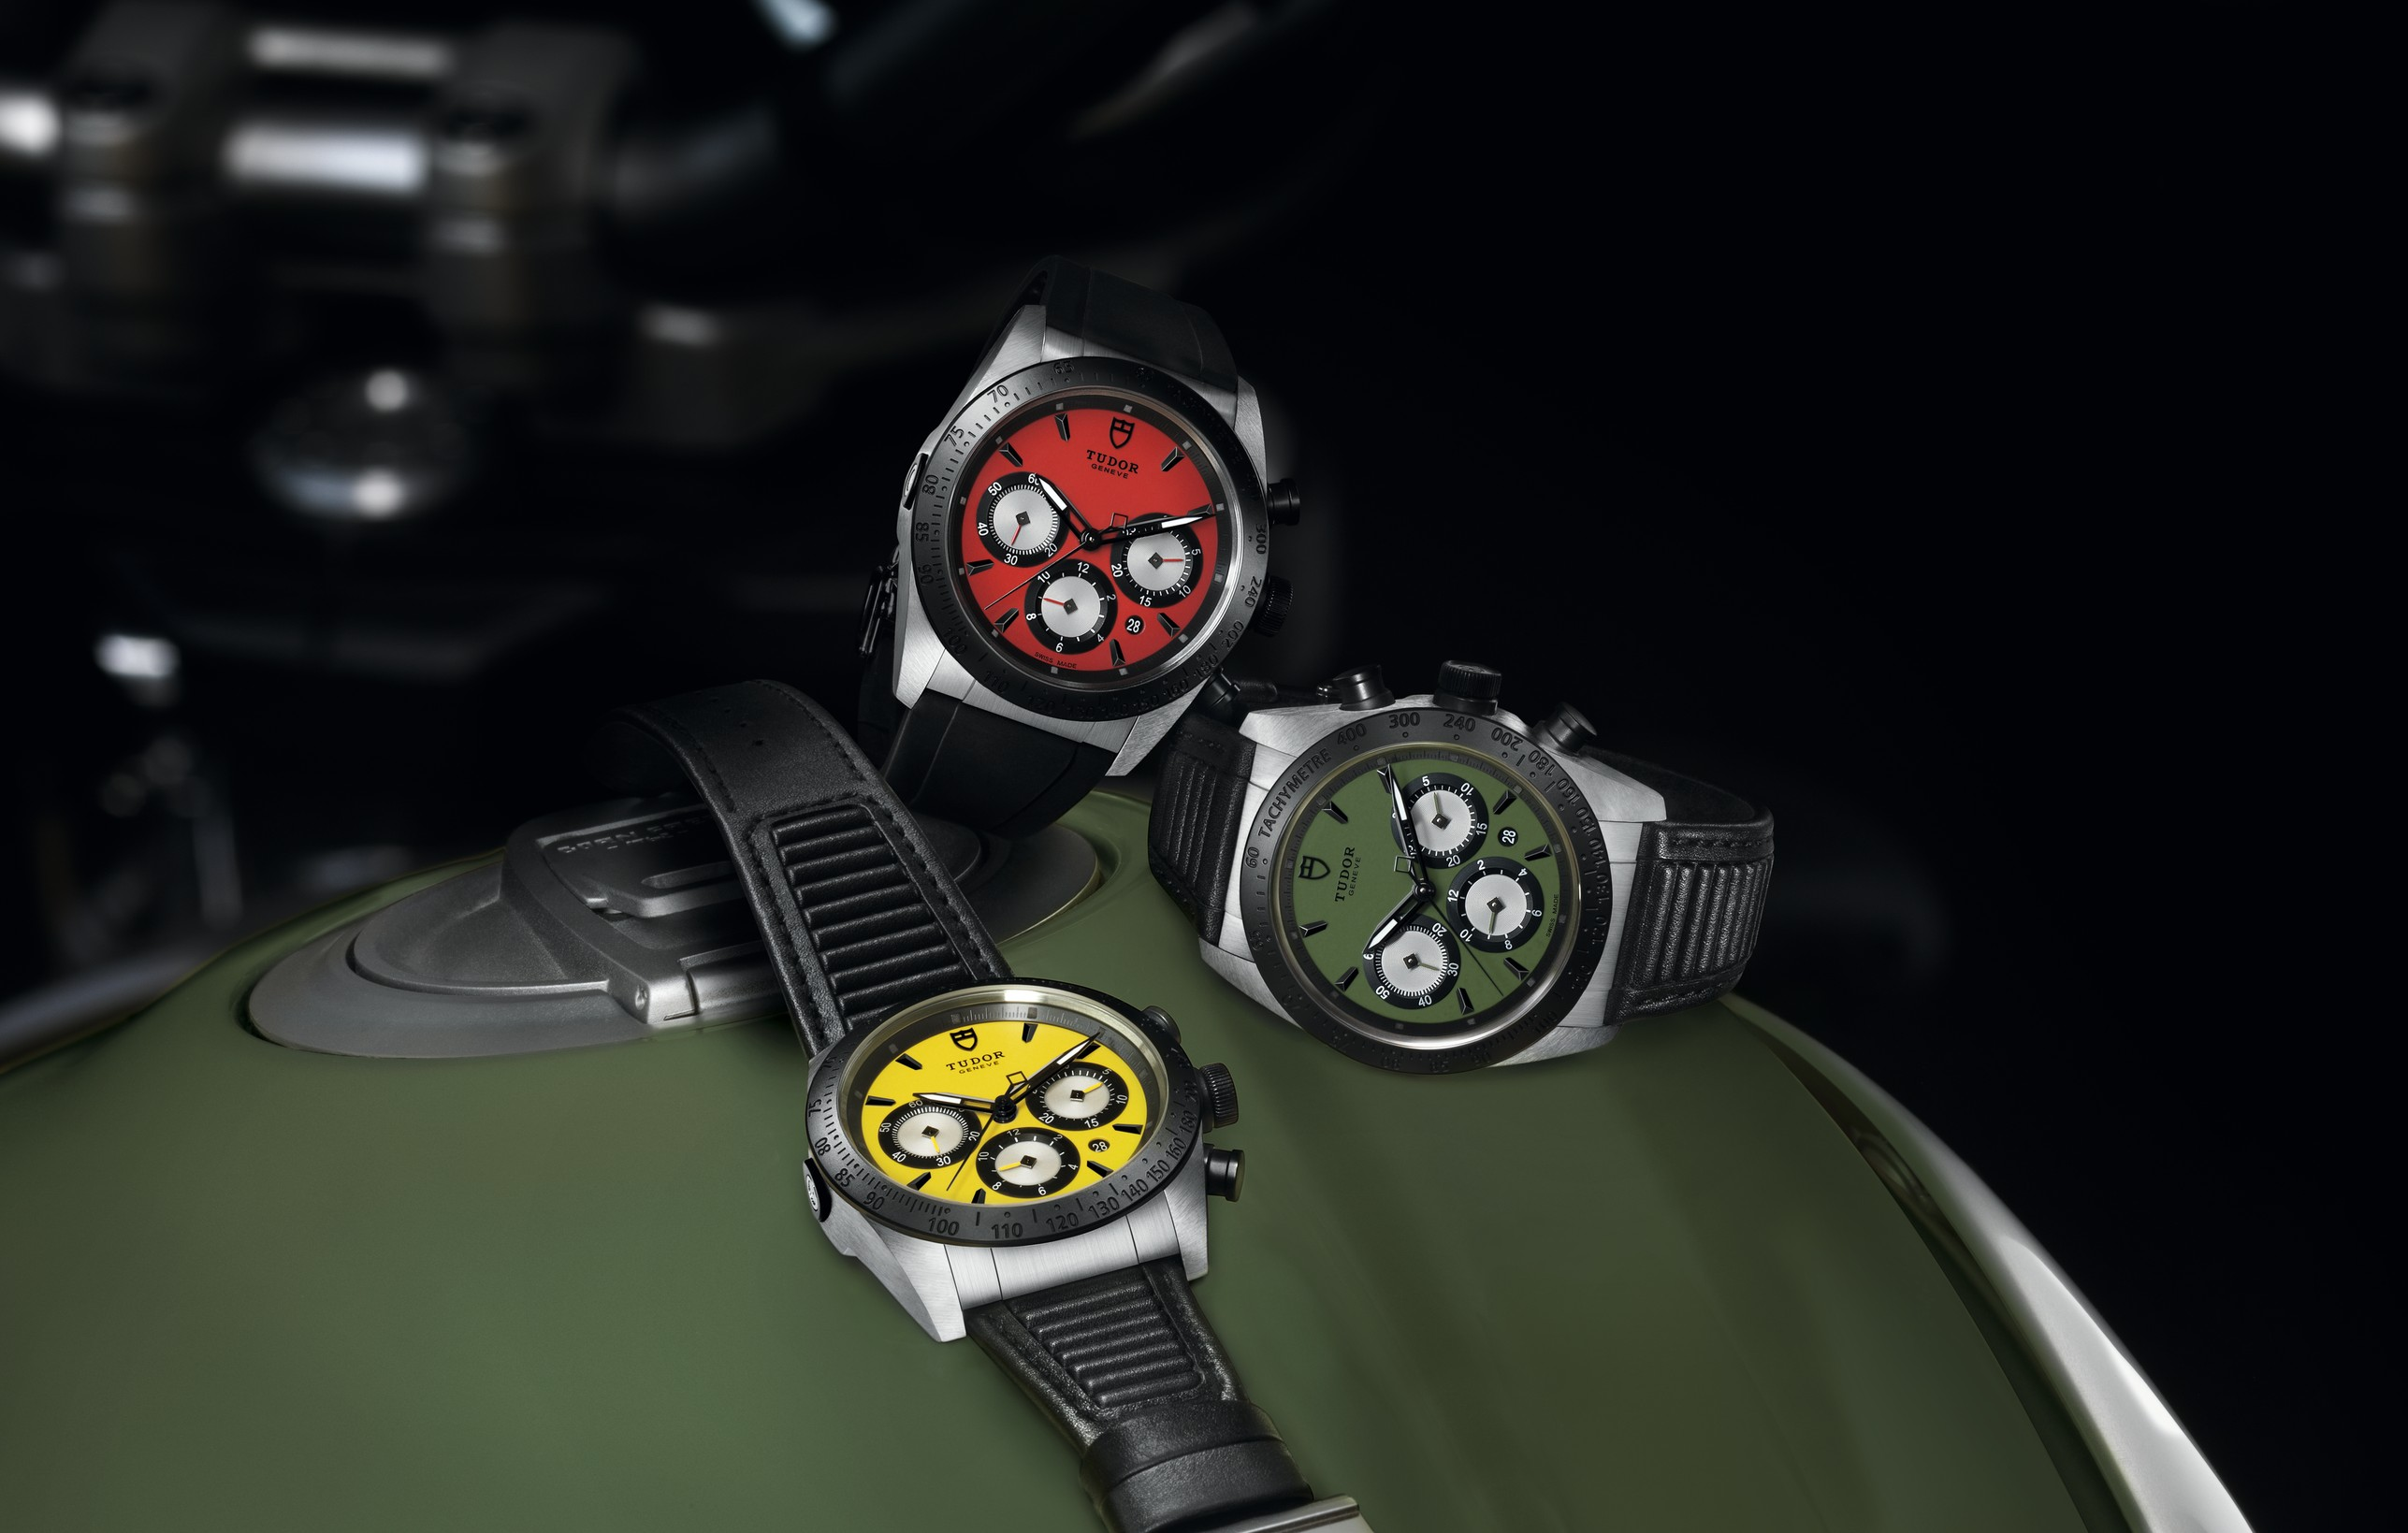 tudor_fastrider_chrono_m42010n_yellow_green_red_family